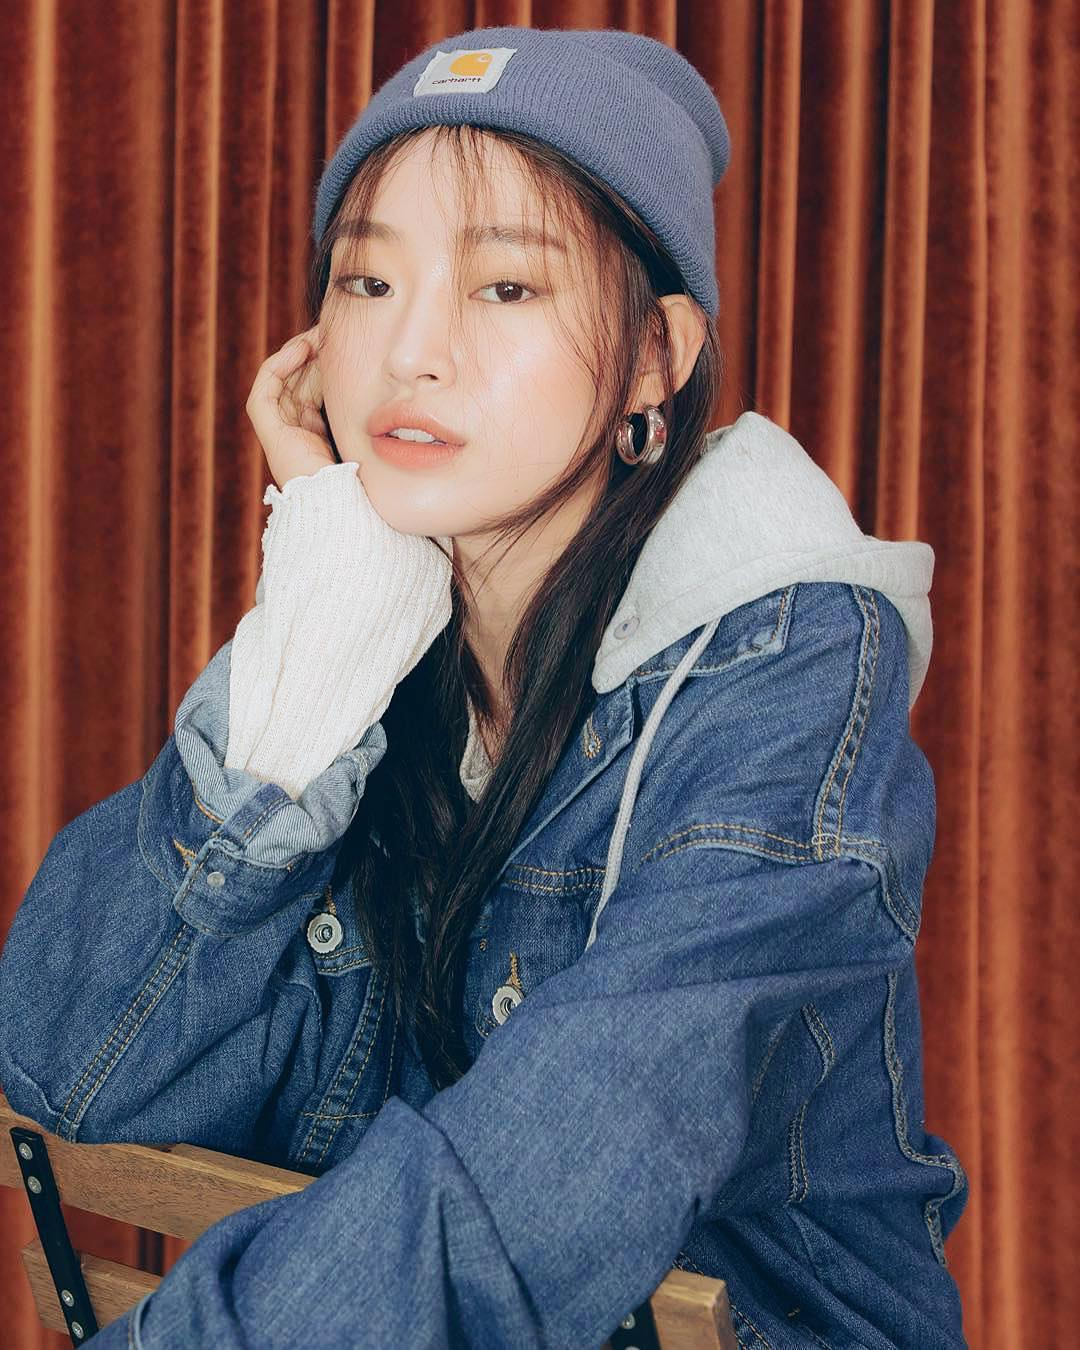 Gray hoodie with denim jacket in blue for autumn 2021